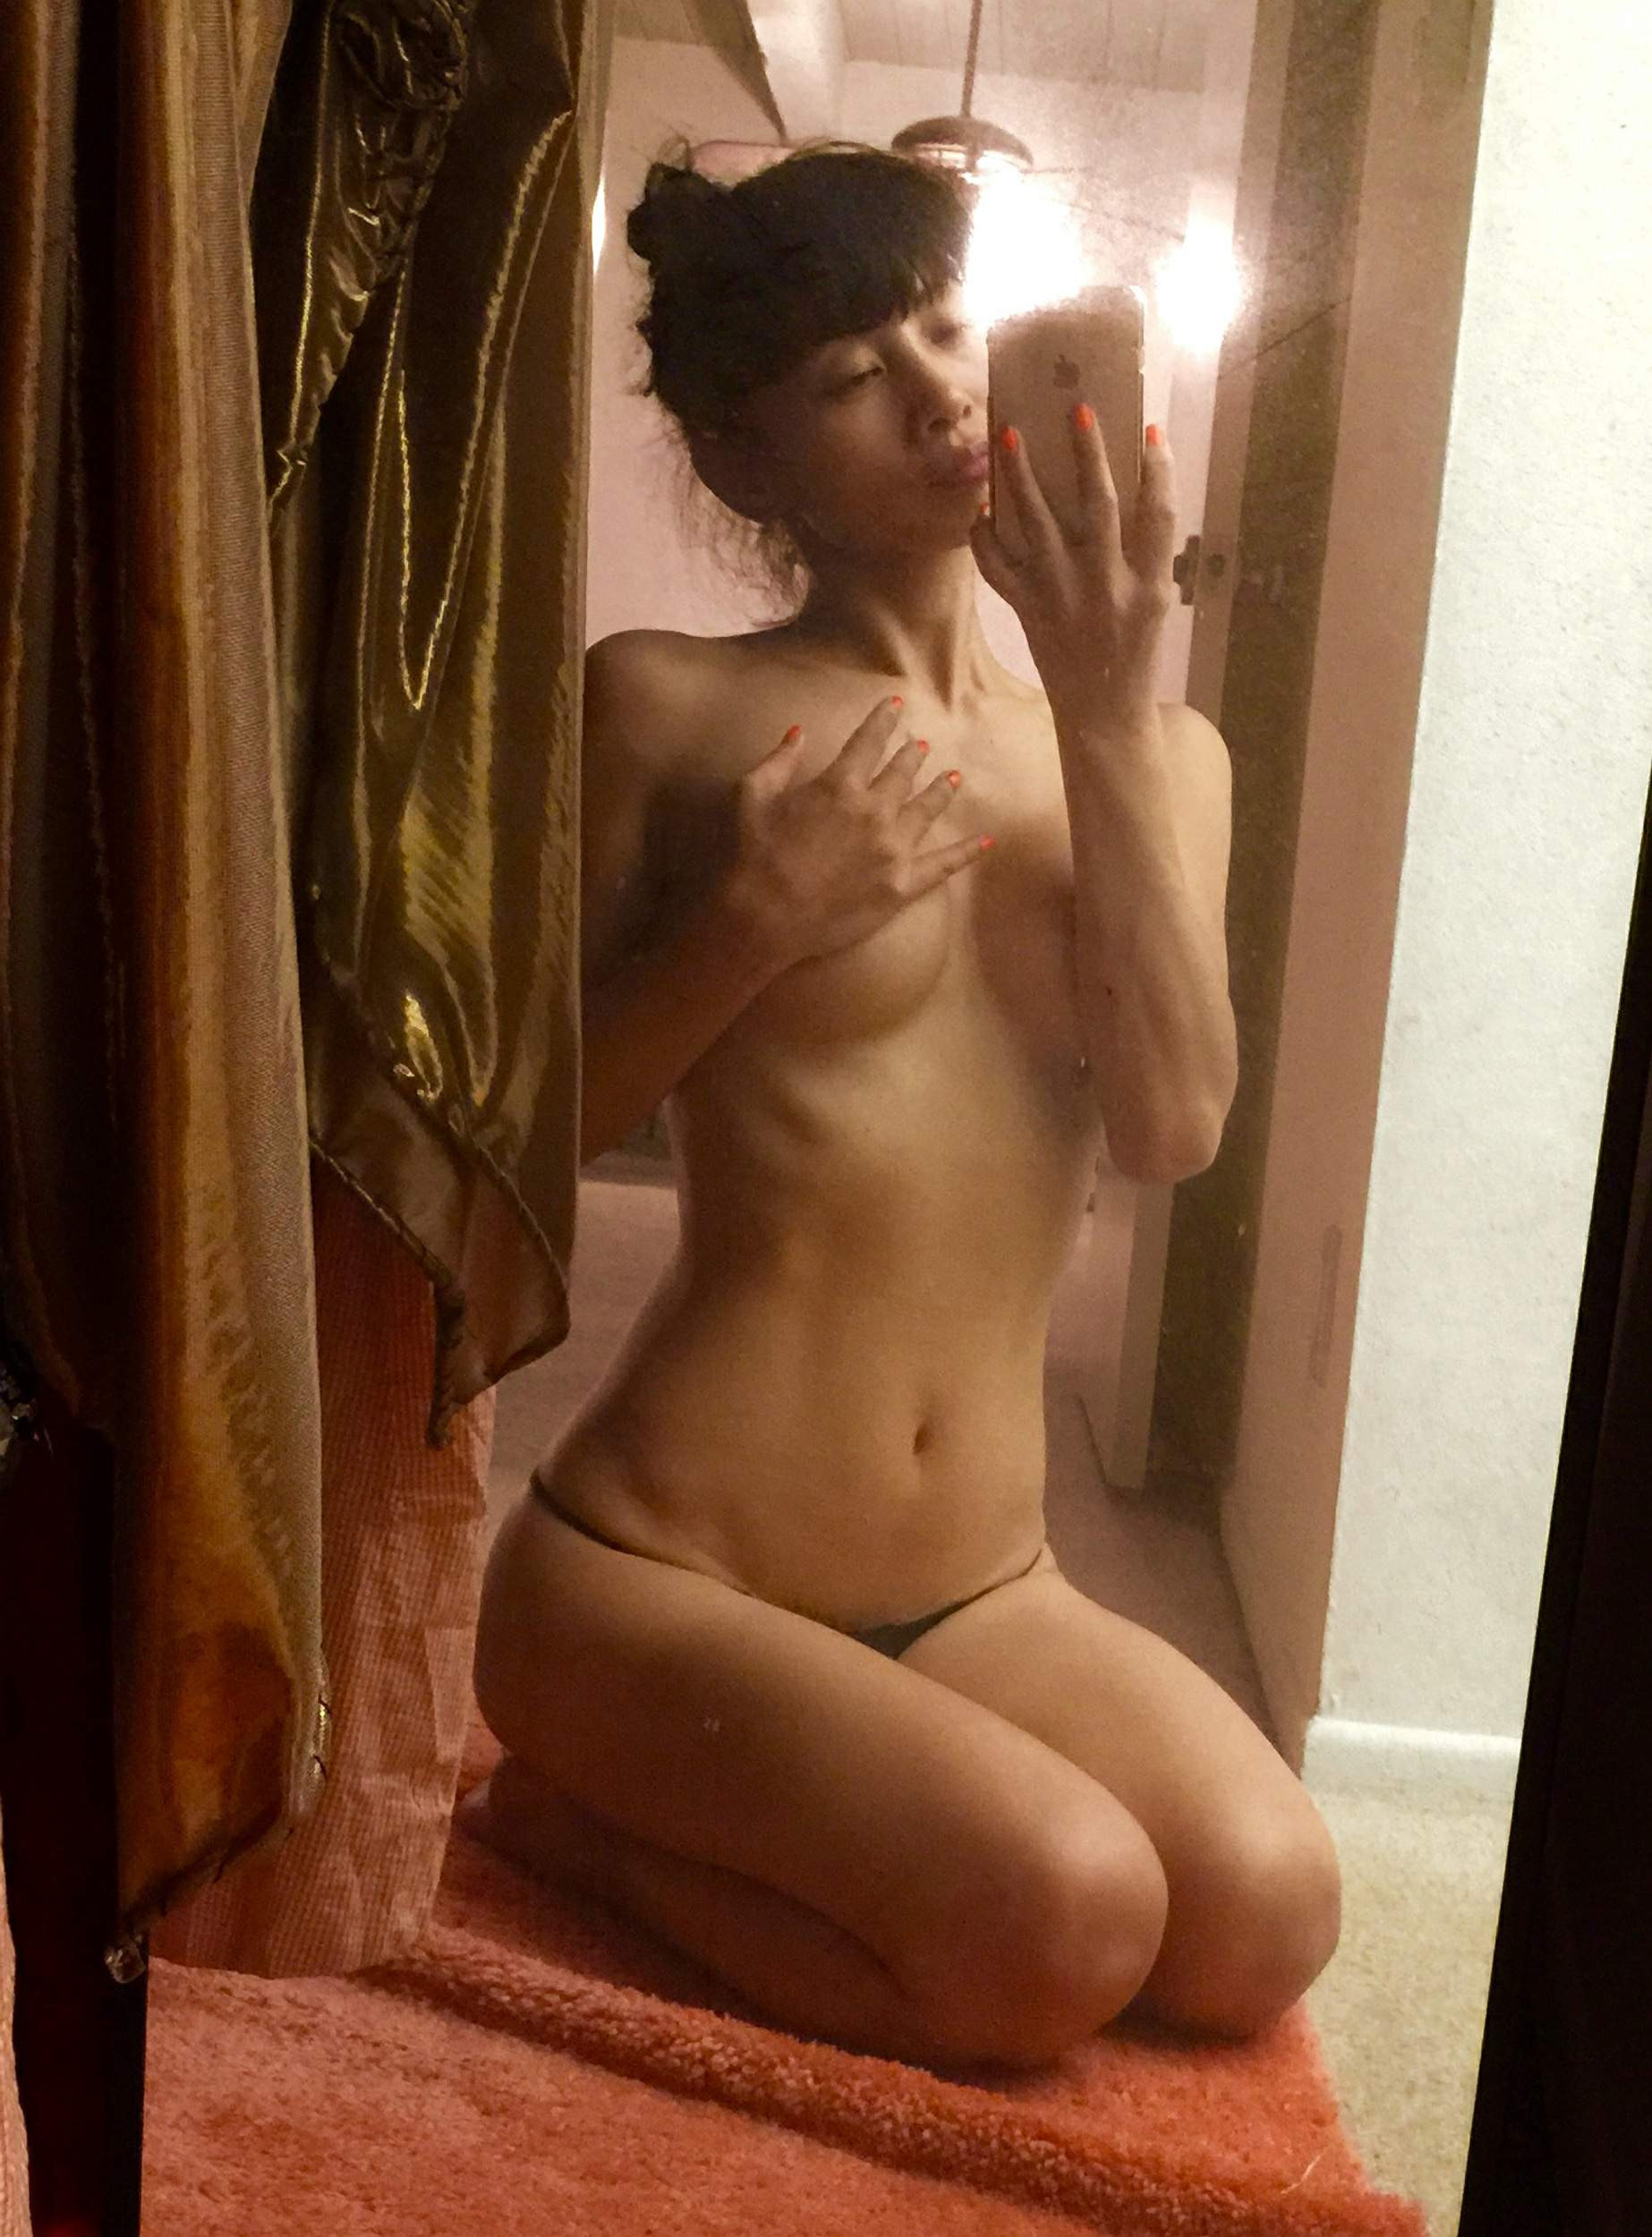 Bai Ling Naked 18 TheFappening.nu